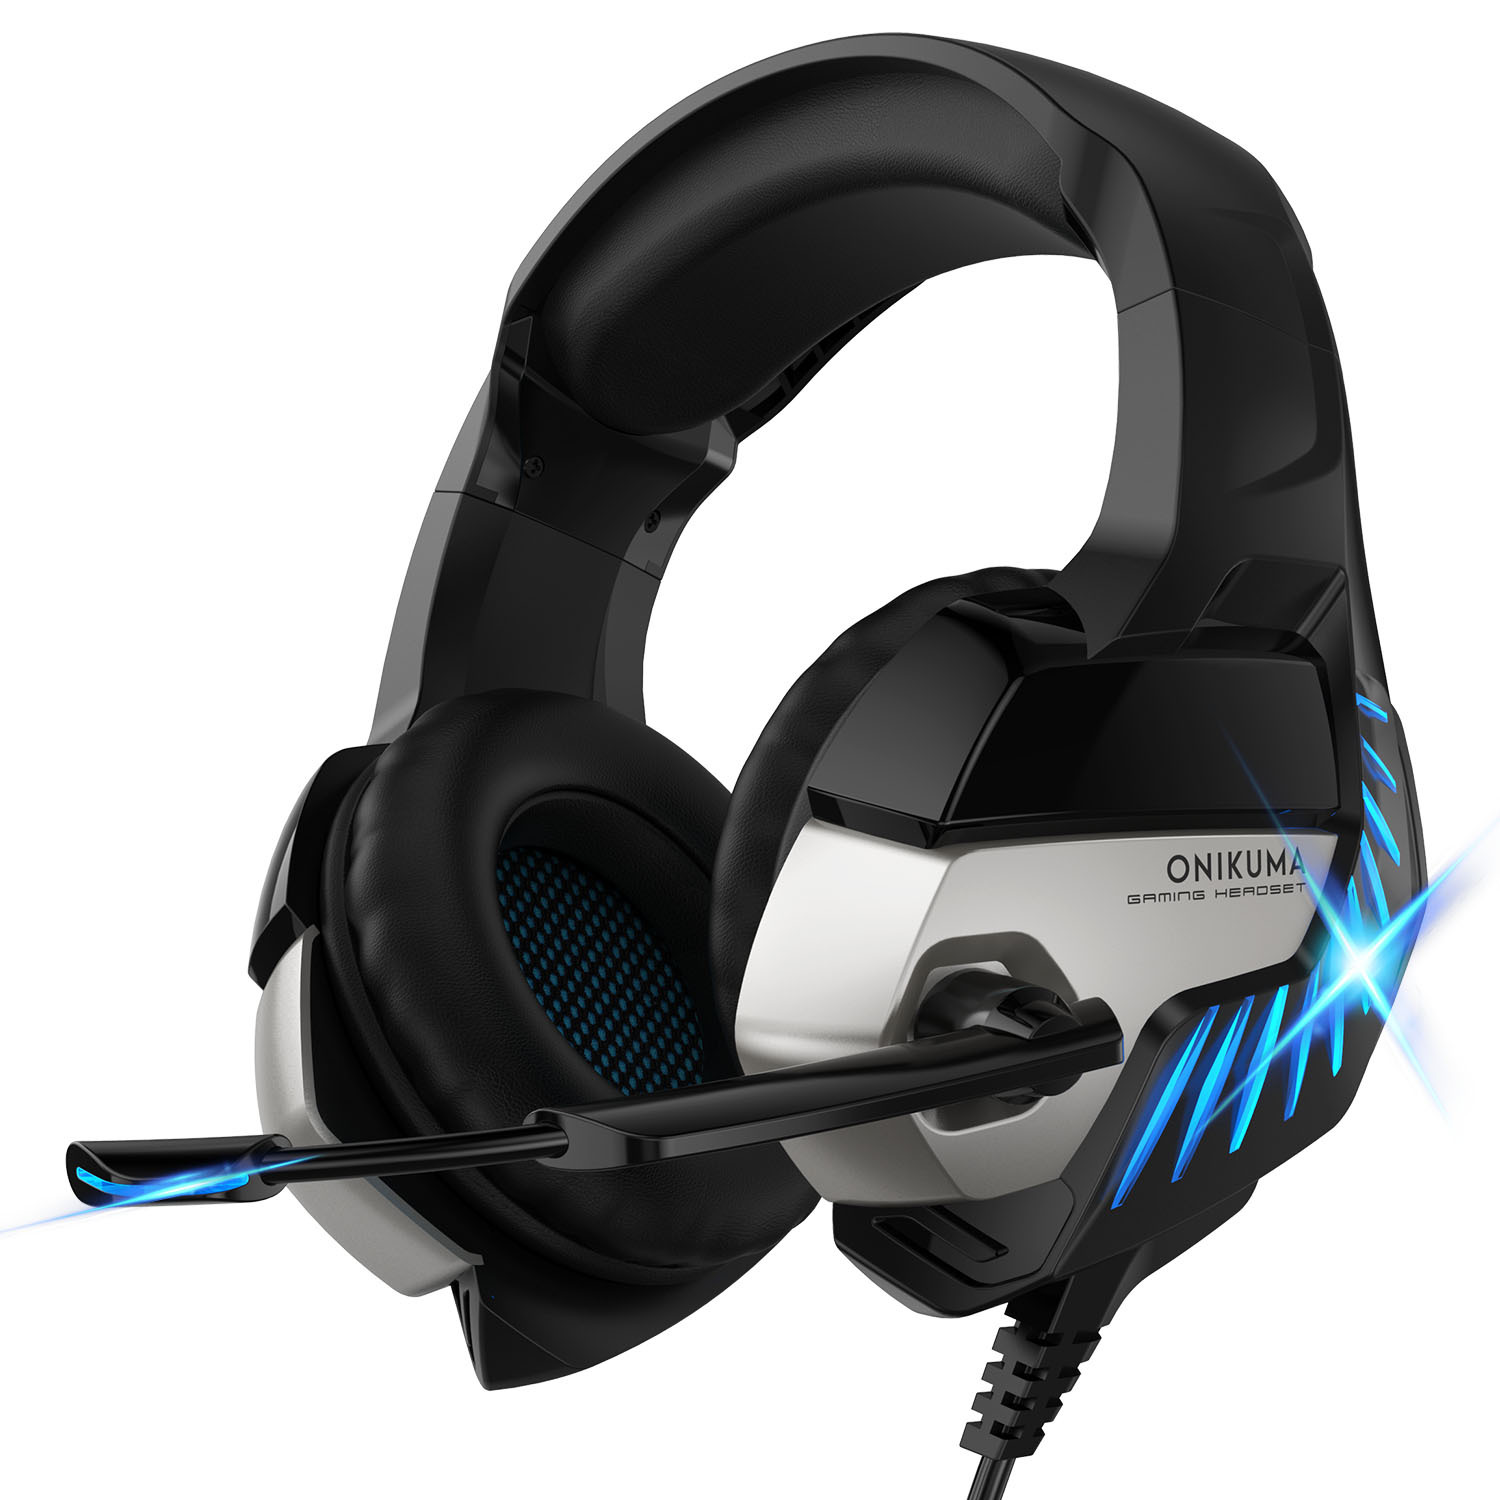 ONIKUMA K5Pro gaming headset headset gaming PS4 wired computer headset